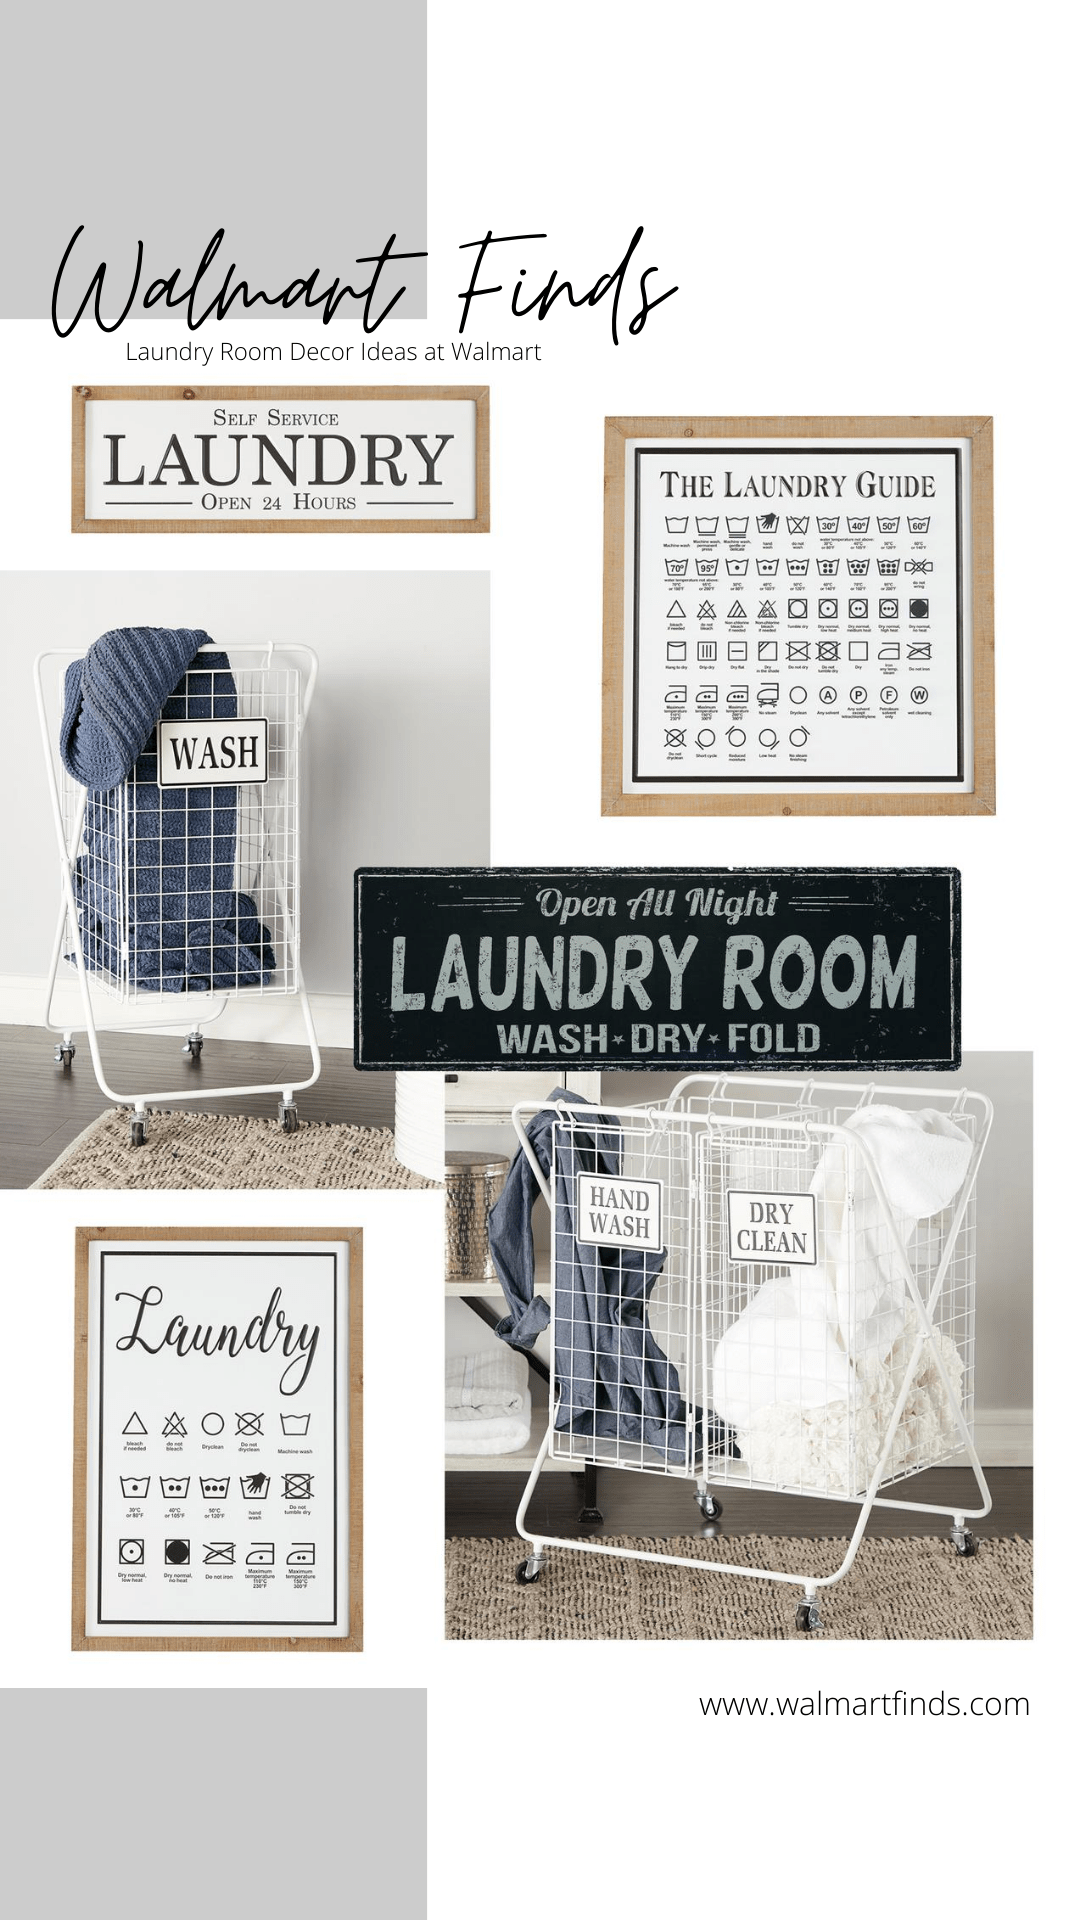 laundry decor items at walmart - walmart laundry signs and metal laundry basket